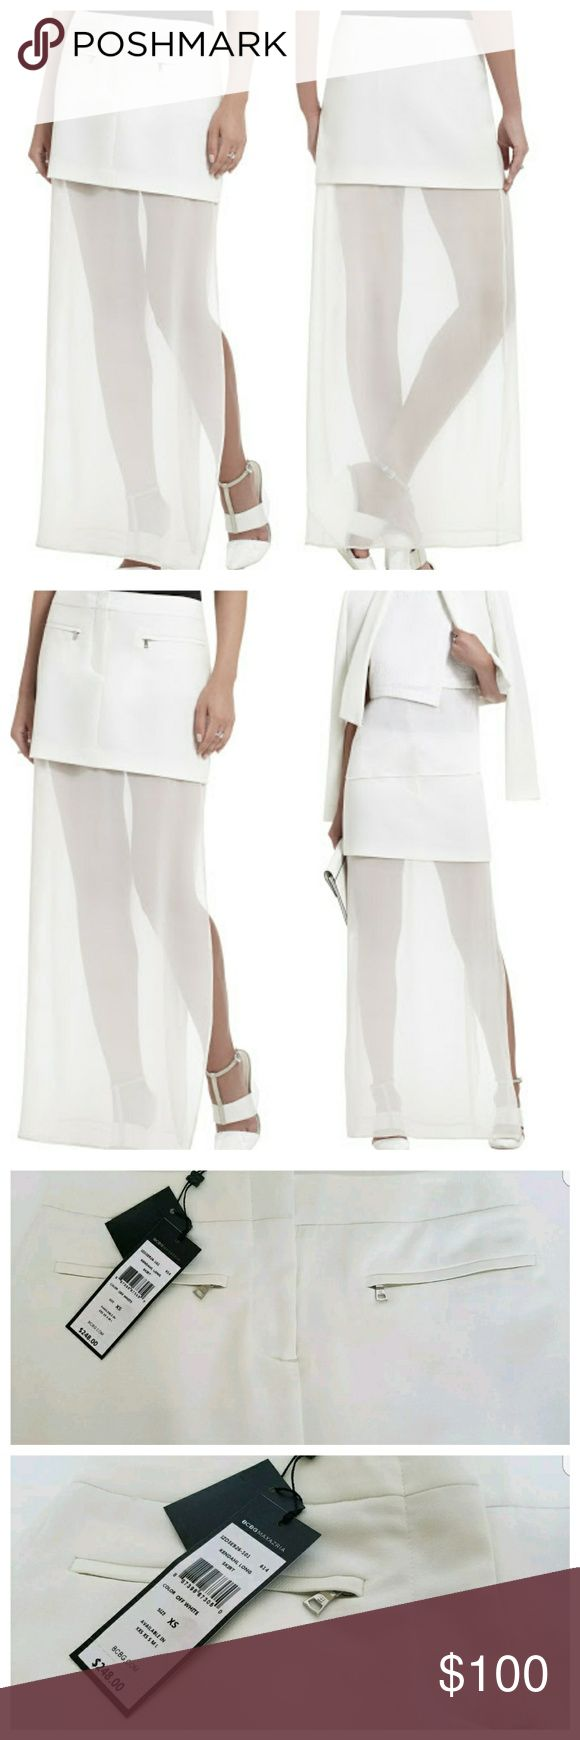 🎉New Bcbg Maxazria Kendahl Long Skirt New Bcbg Maxazria Kendahl Long Skirt   Give the illusion of a leg-lengthening mini when you step out in this elegant A-line maxi skirt.  Sits at waist. Front-to-back zipper closures A-line. Exposed, slightly sheer floor-length lining. Front zipper with hook-and-bar closure. Self: Polyester, Cotton jacquard. Contrast 1: 100% Silk chiffon. 2: Cotton, Silk canvas. Lining: Polyester, Spandex. Hand Wash.  Size xsmall New with tags color off white  I do…